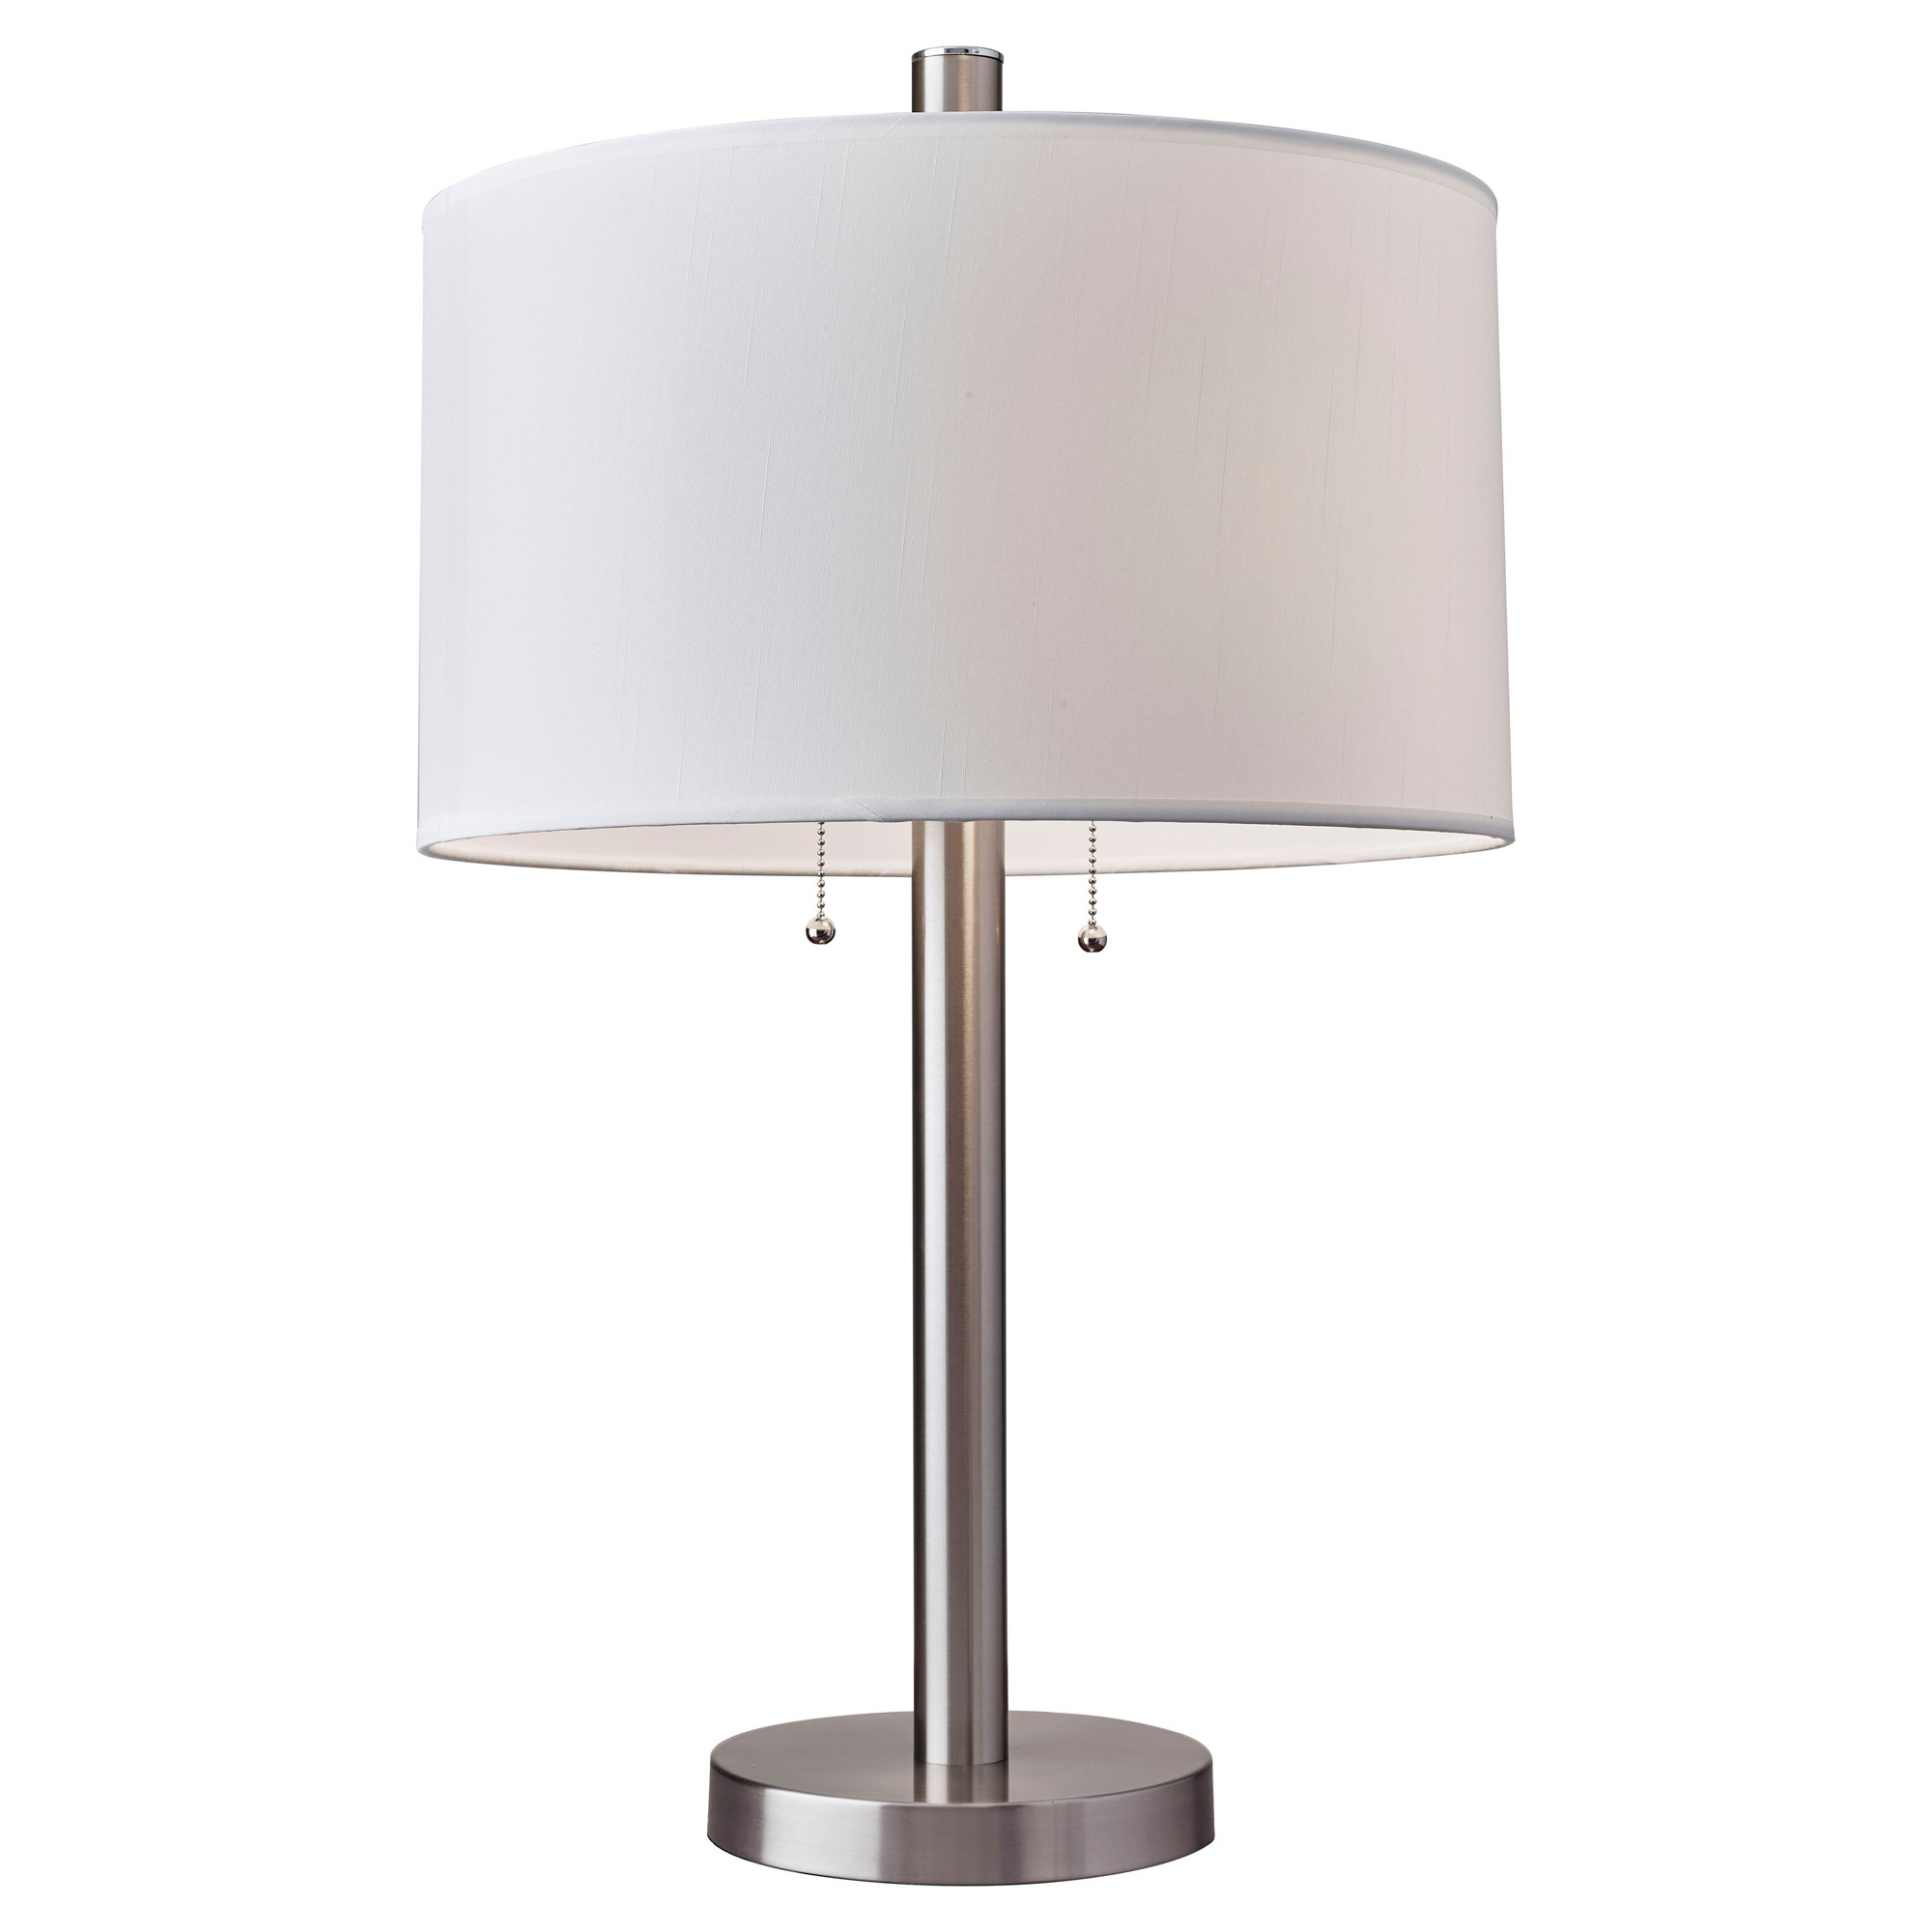 Boulevard Table Lamp - Satin Steel (Lamp Only)